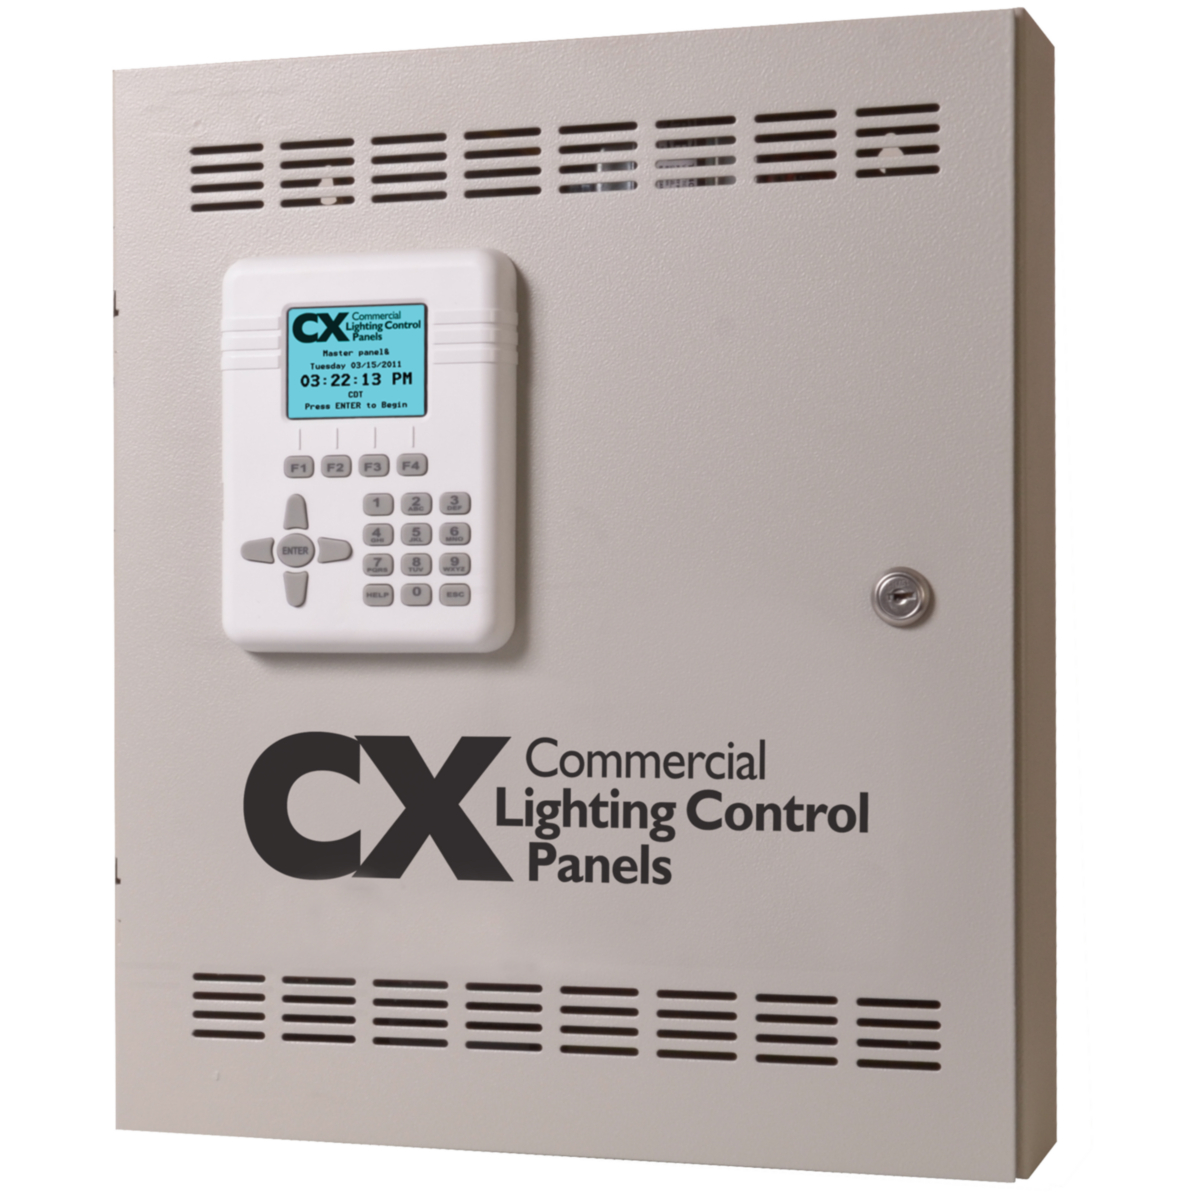 Cx Lighting Control Panels 4 And 8 Relays Brand Hubbell Building Wiring Solutions Ltd Hcs Cx04 Panel Jmk1192 3 Prodimage